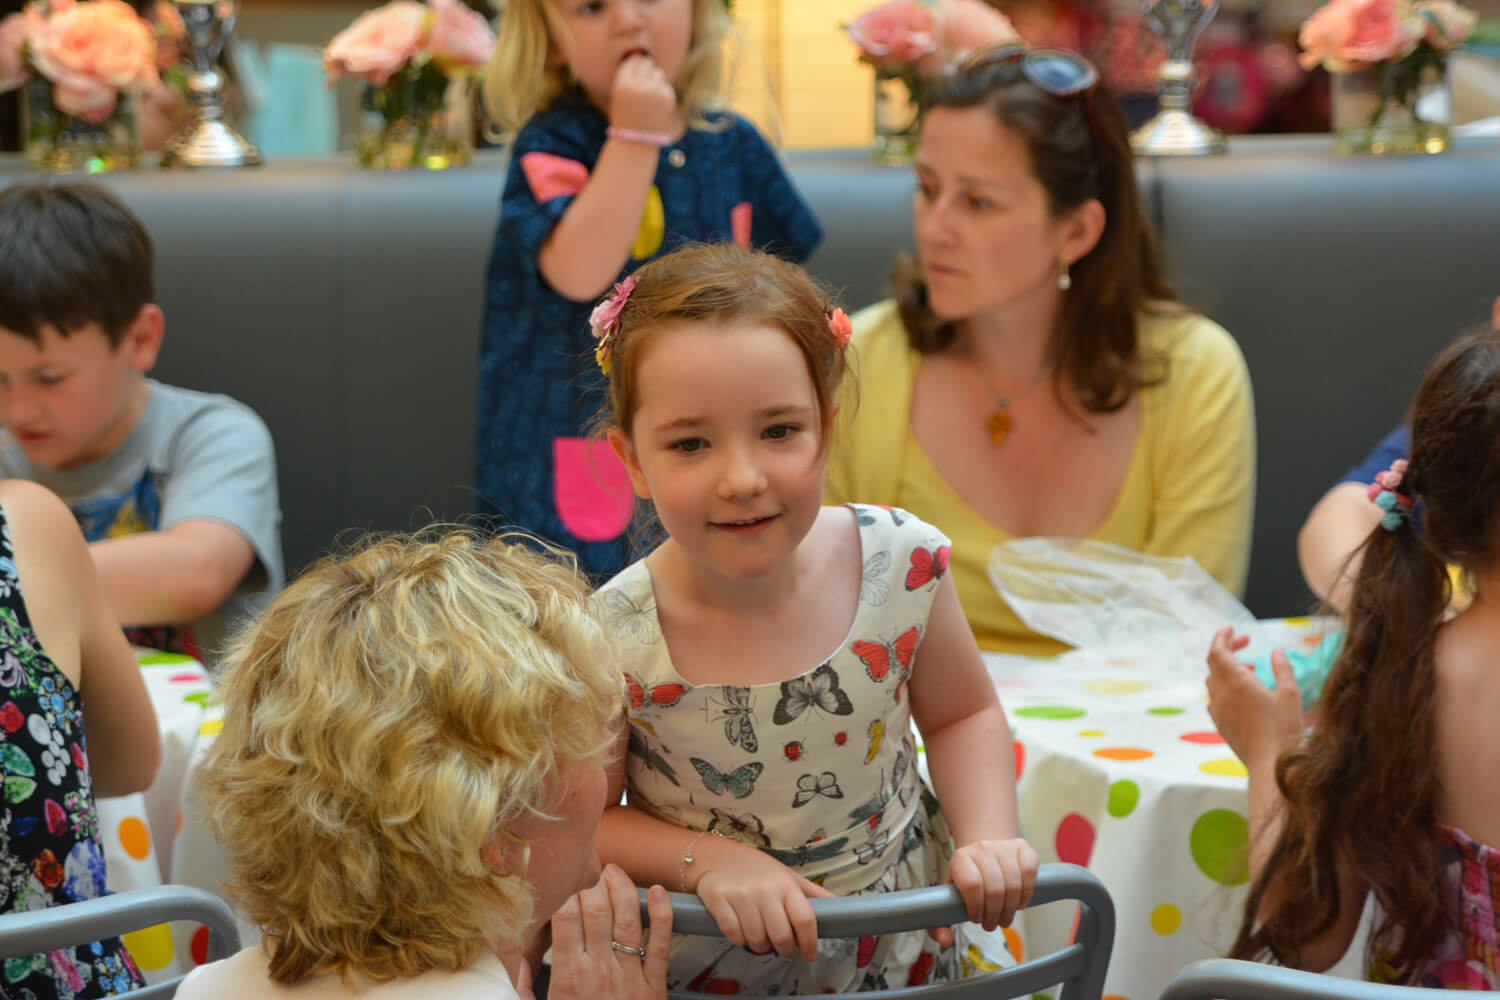 Maisie - one of our hero patient stories